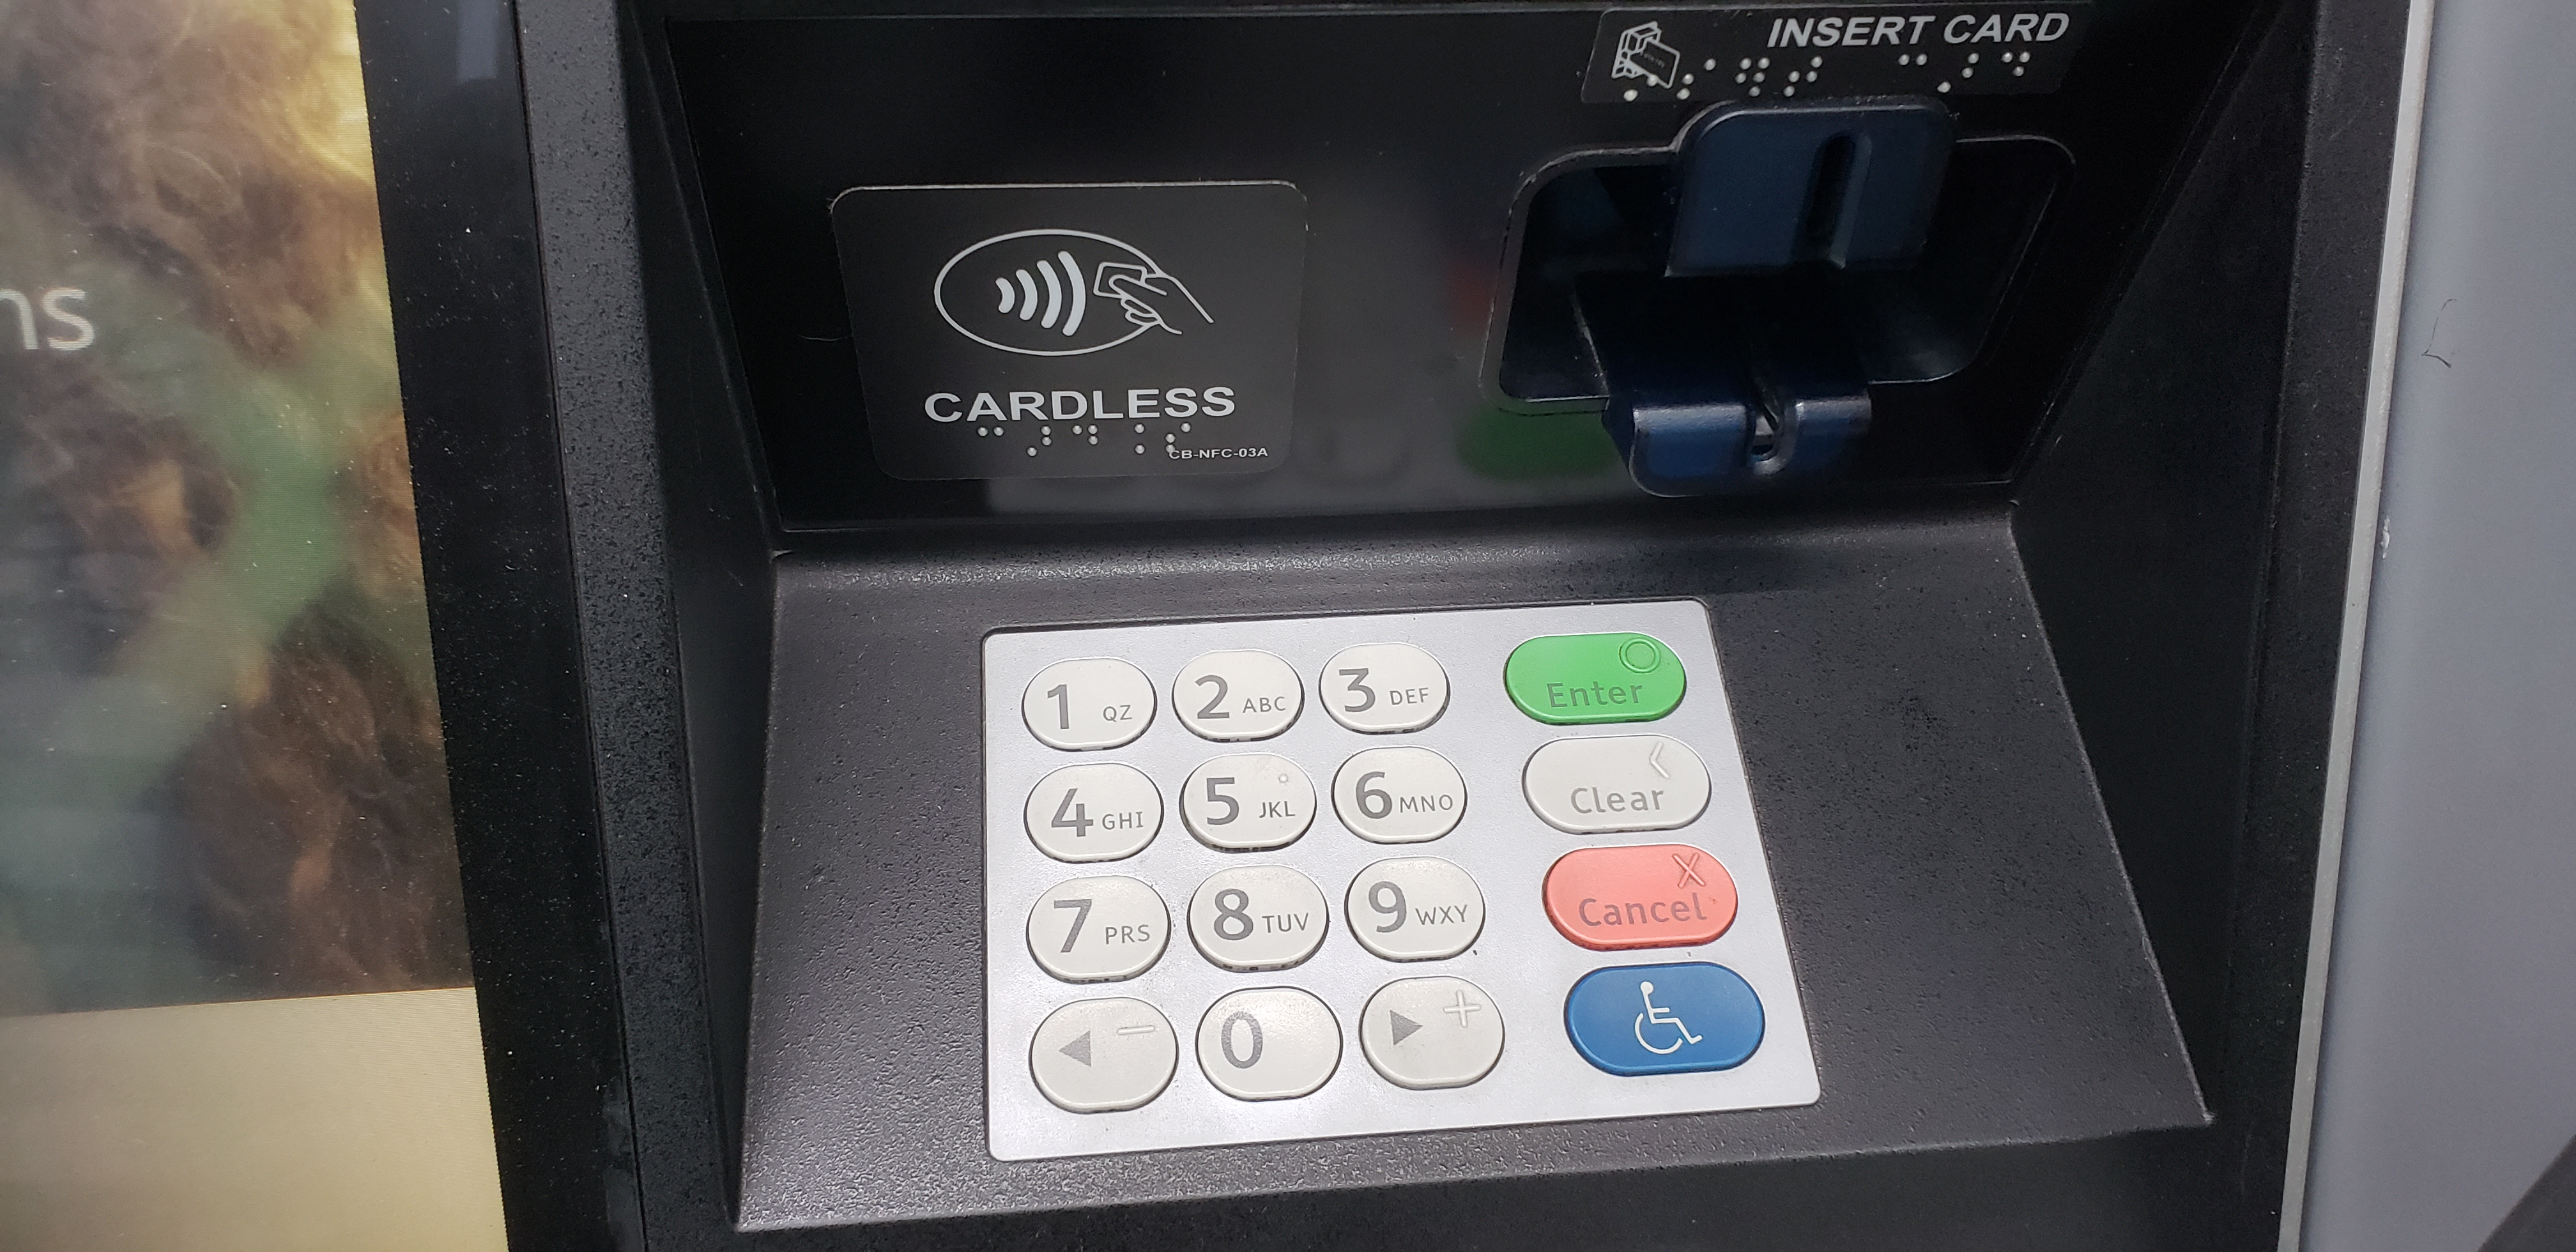 Chase Adds Cardless ATMs Too